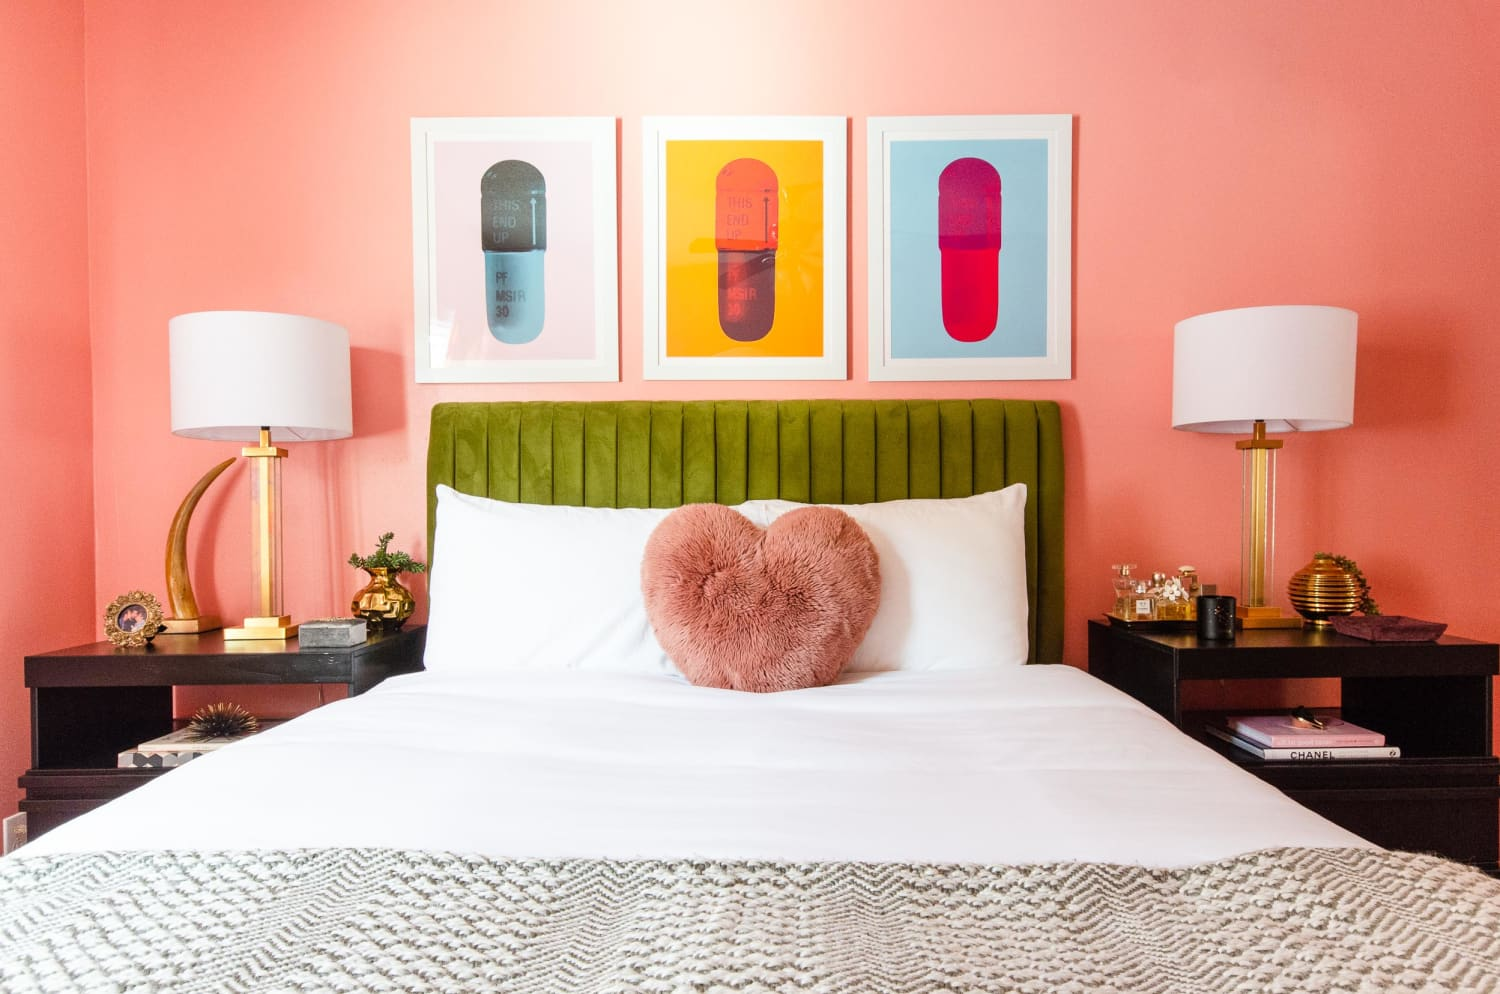 An Interior Designer on a Budget Turned a Dated Apartment Into a Colorful, Eclectic Space